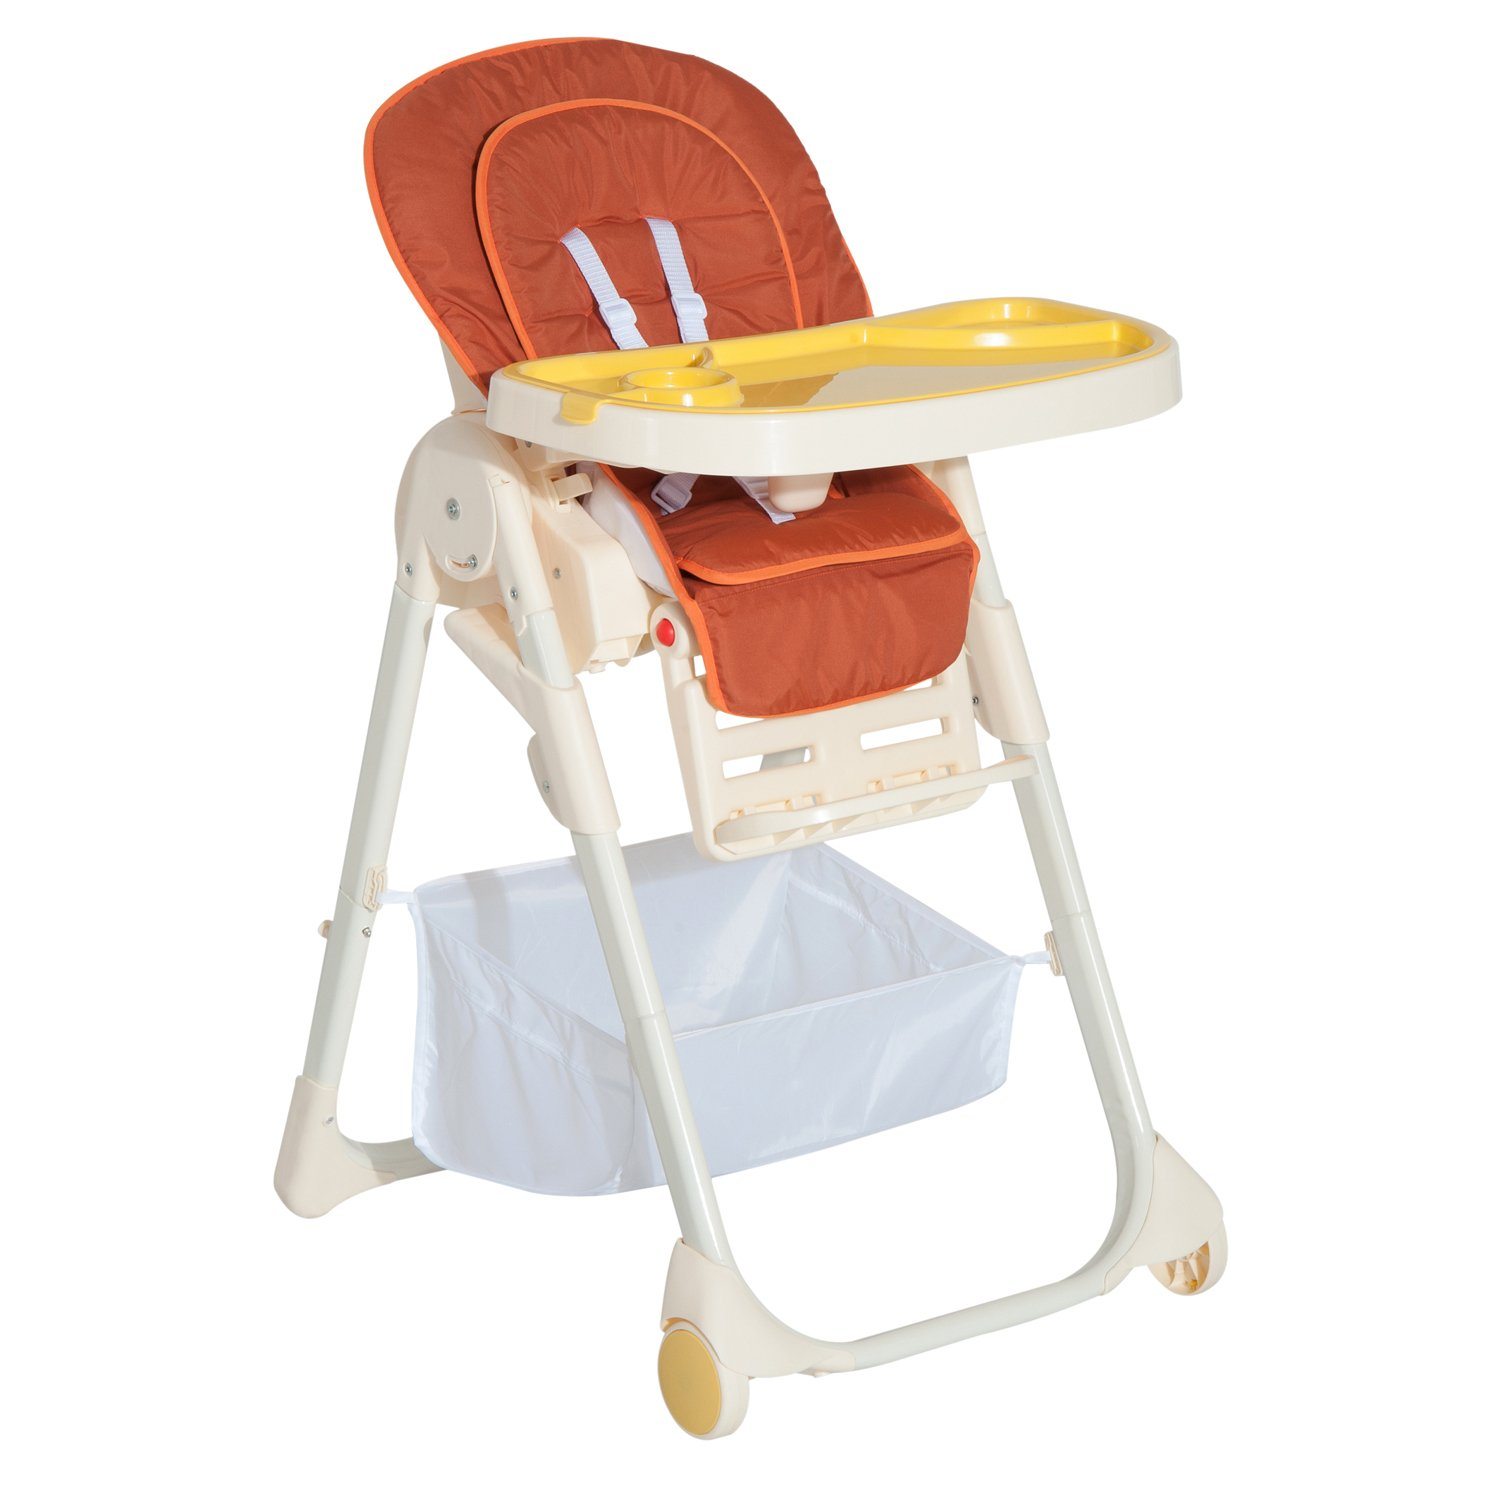 HOM Baby High Chair Kids Infant Toddler Folding Feeding pact